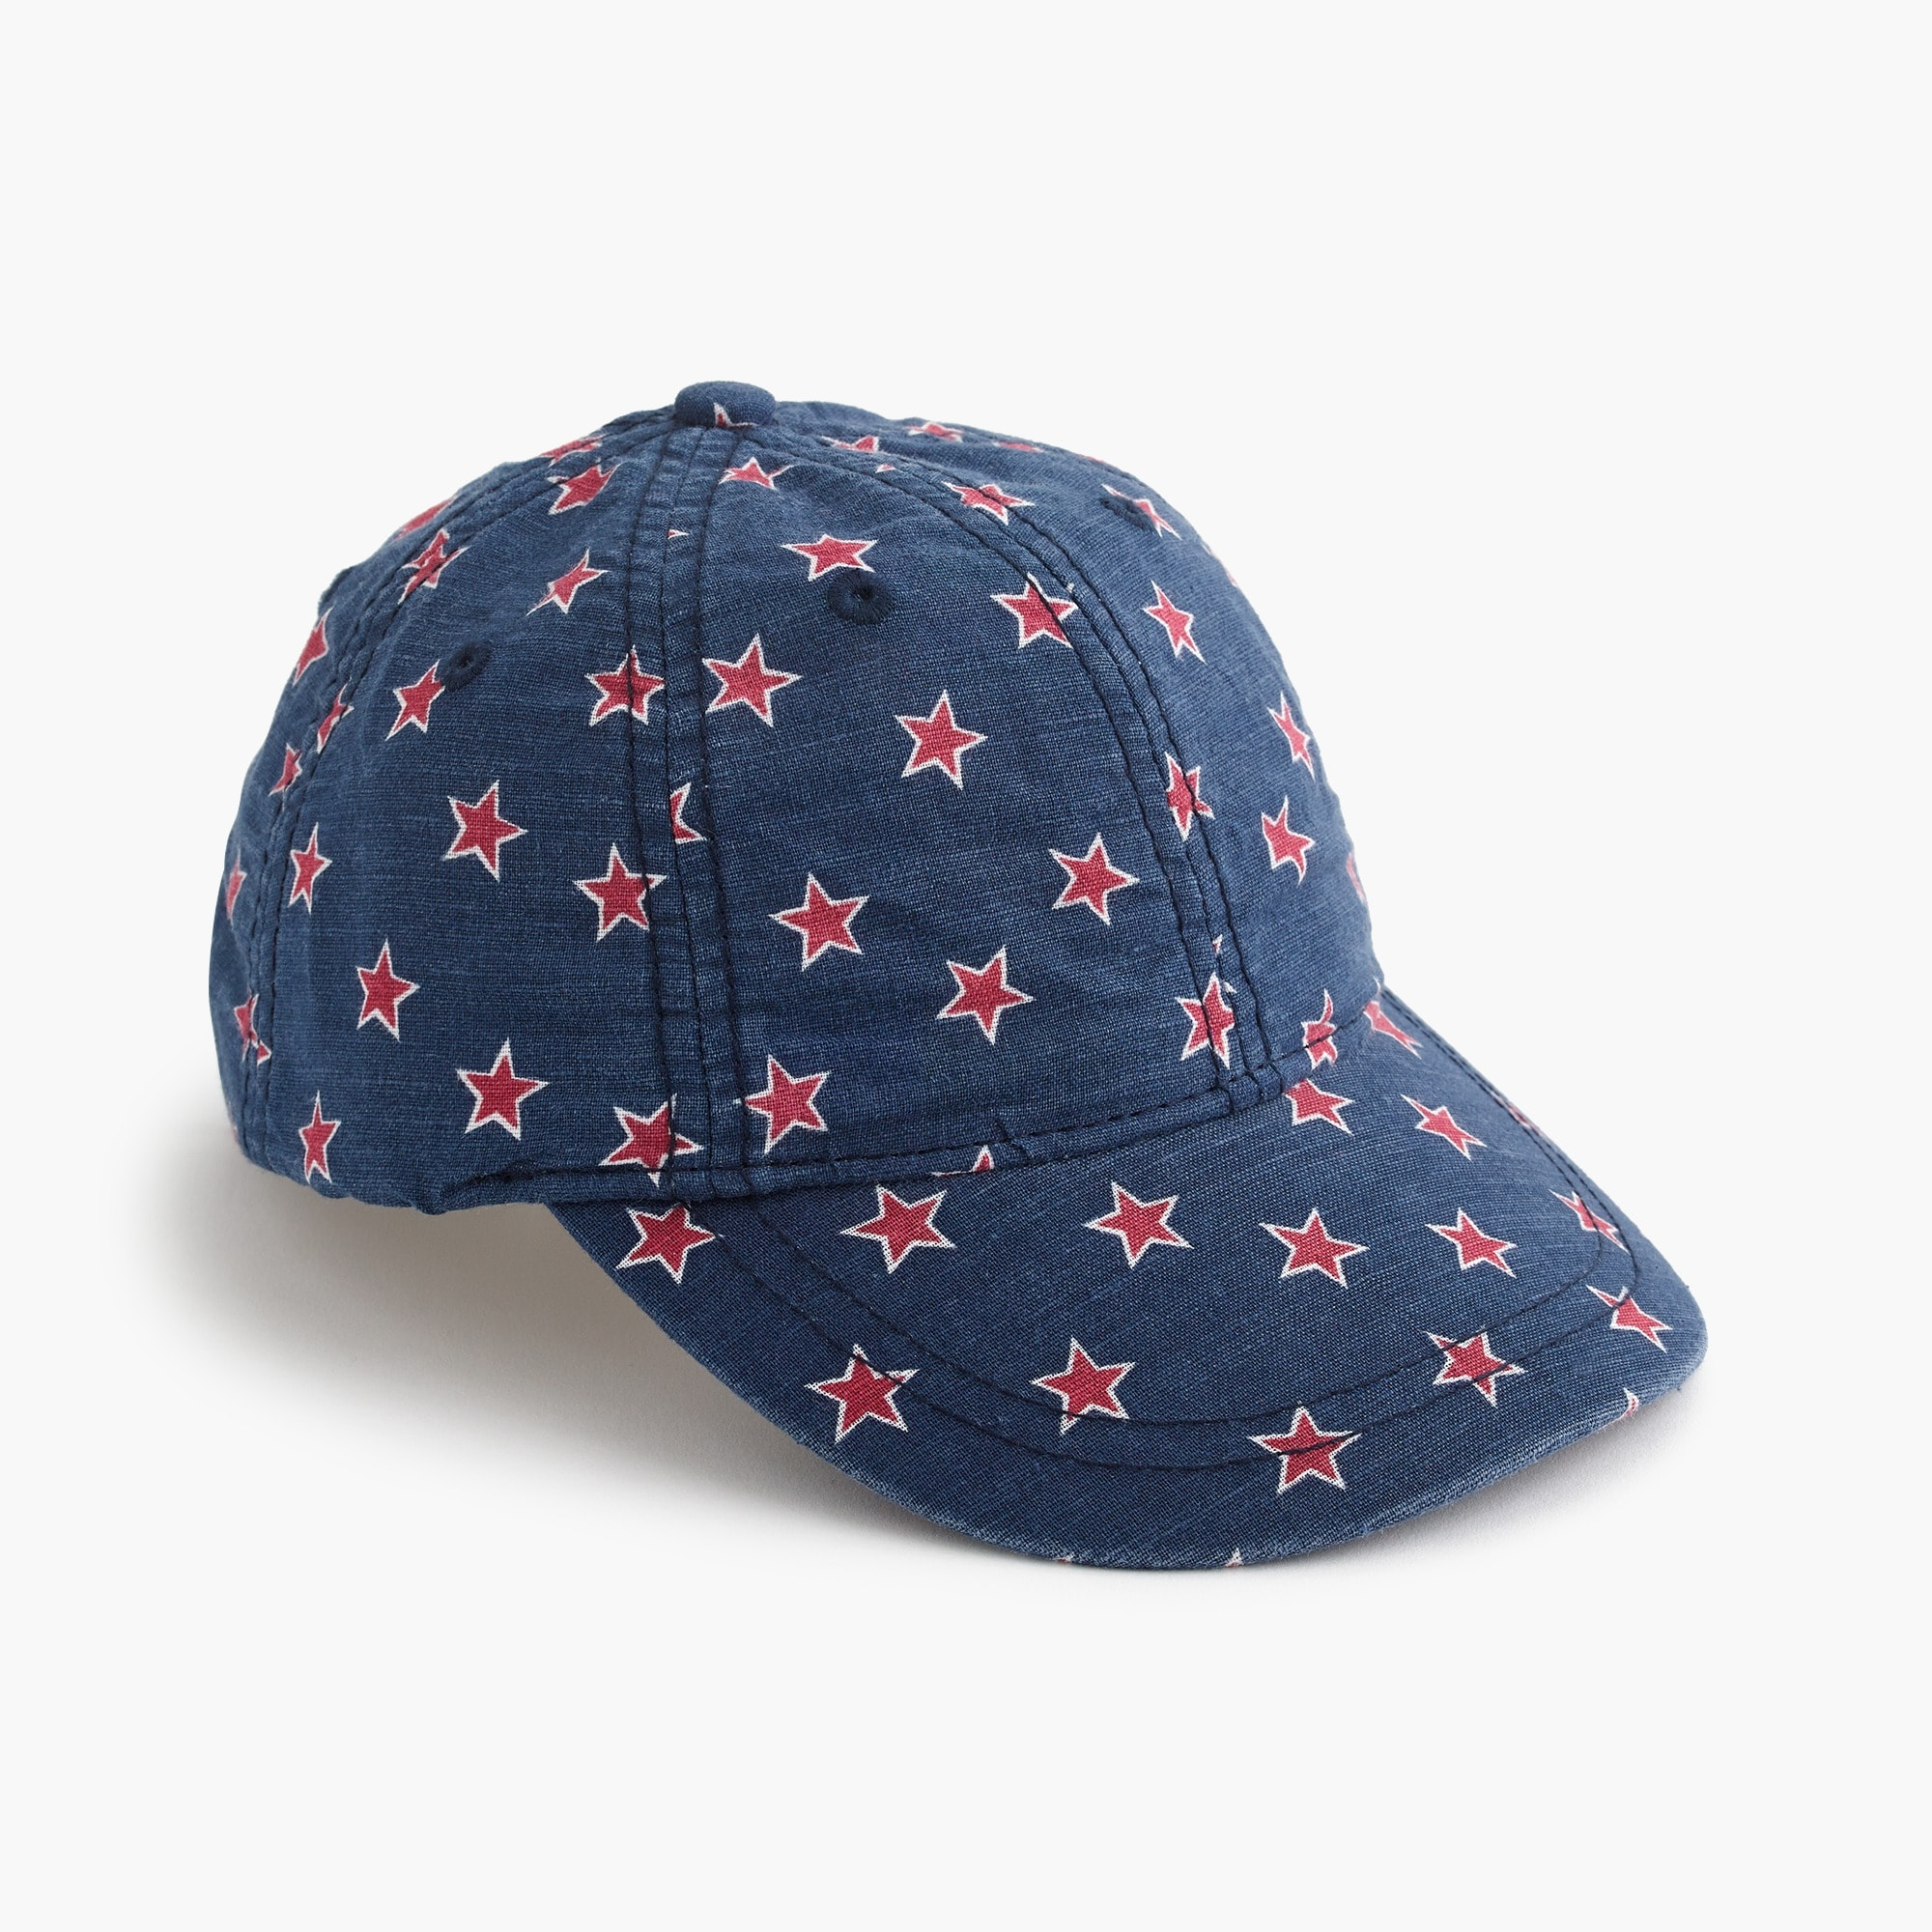 Image 1 for Kids' star-printed baseball cap